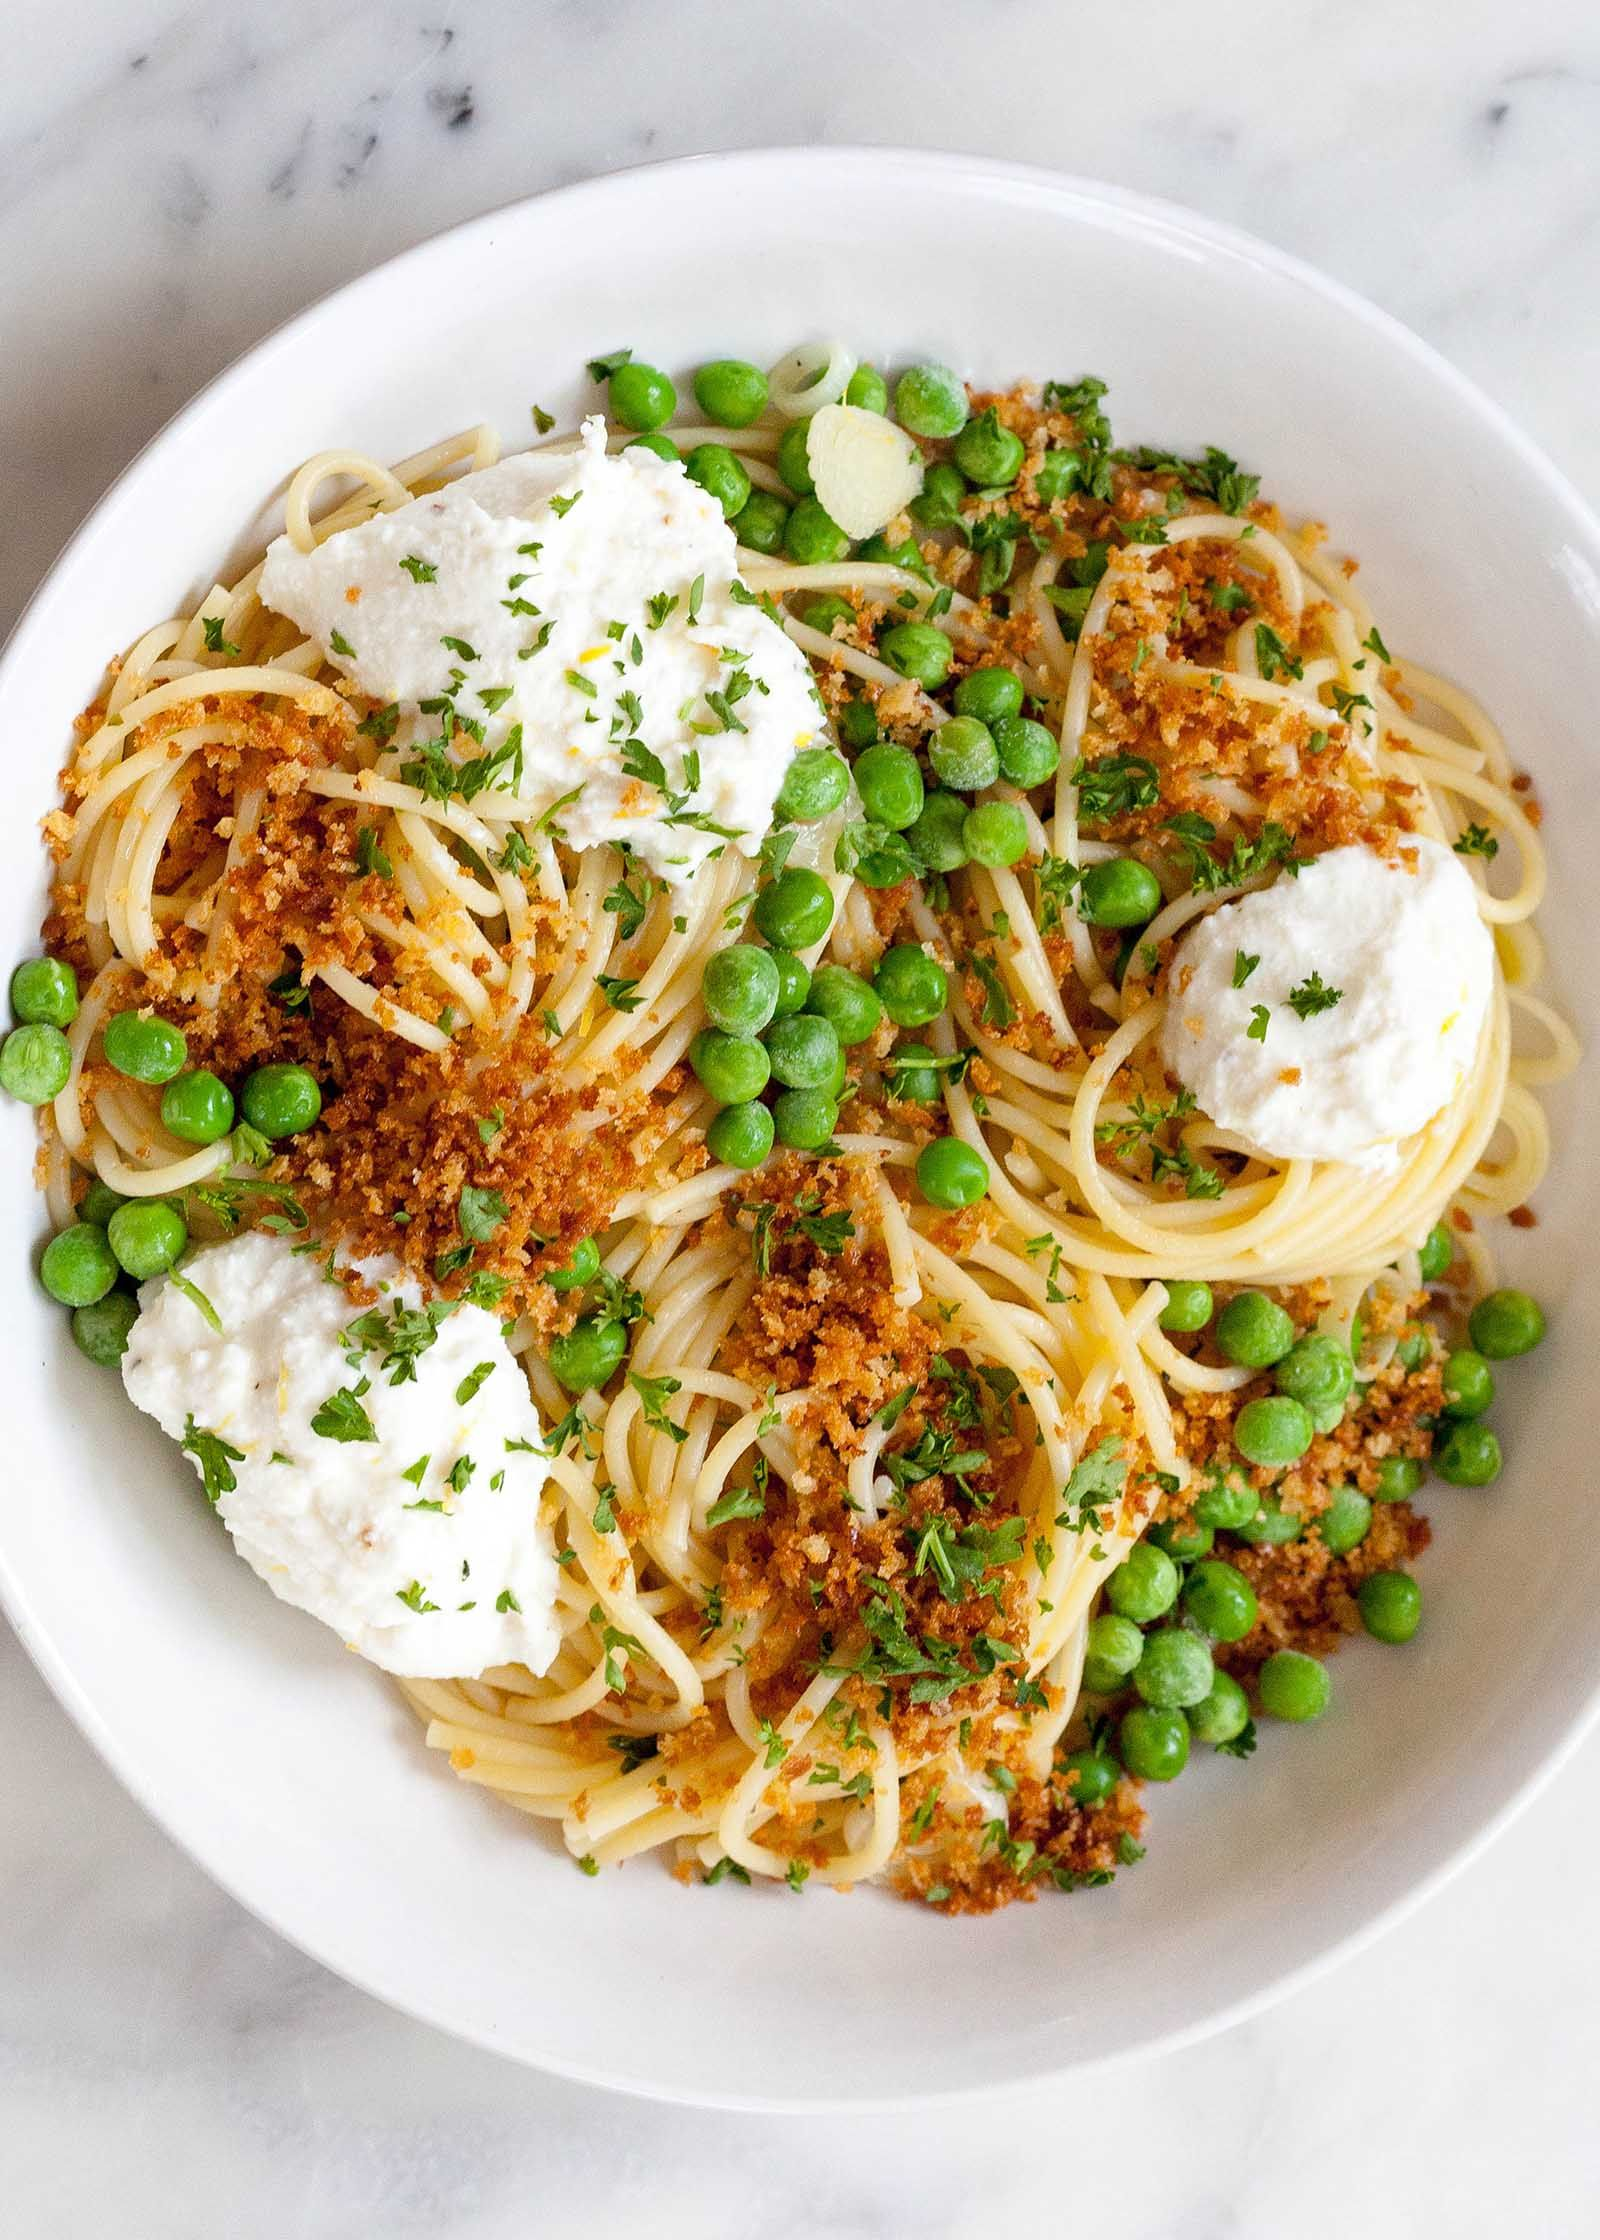 Lemony Spaghetti With Peas And Ricotta